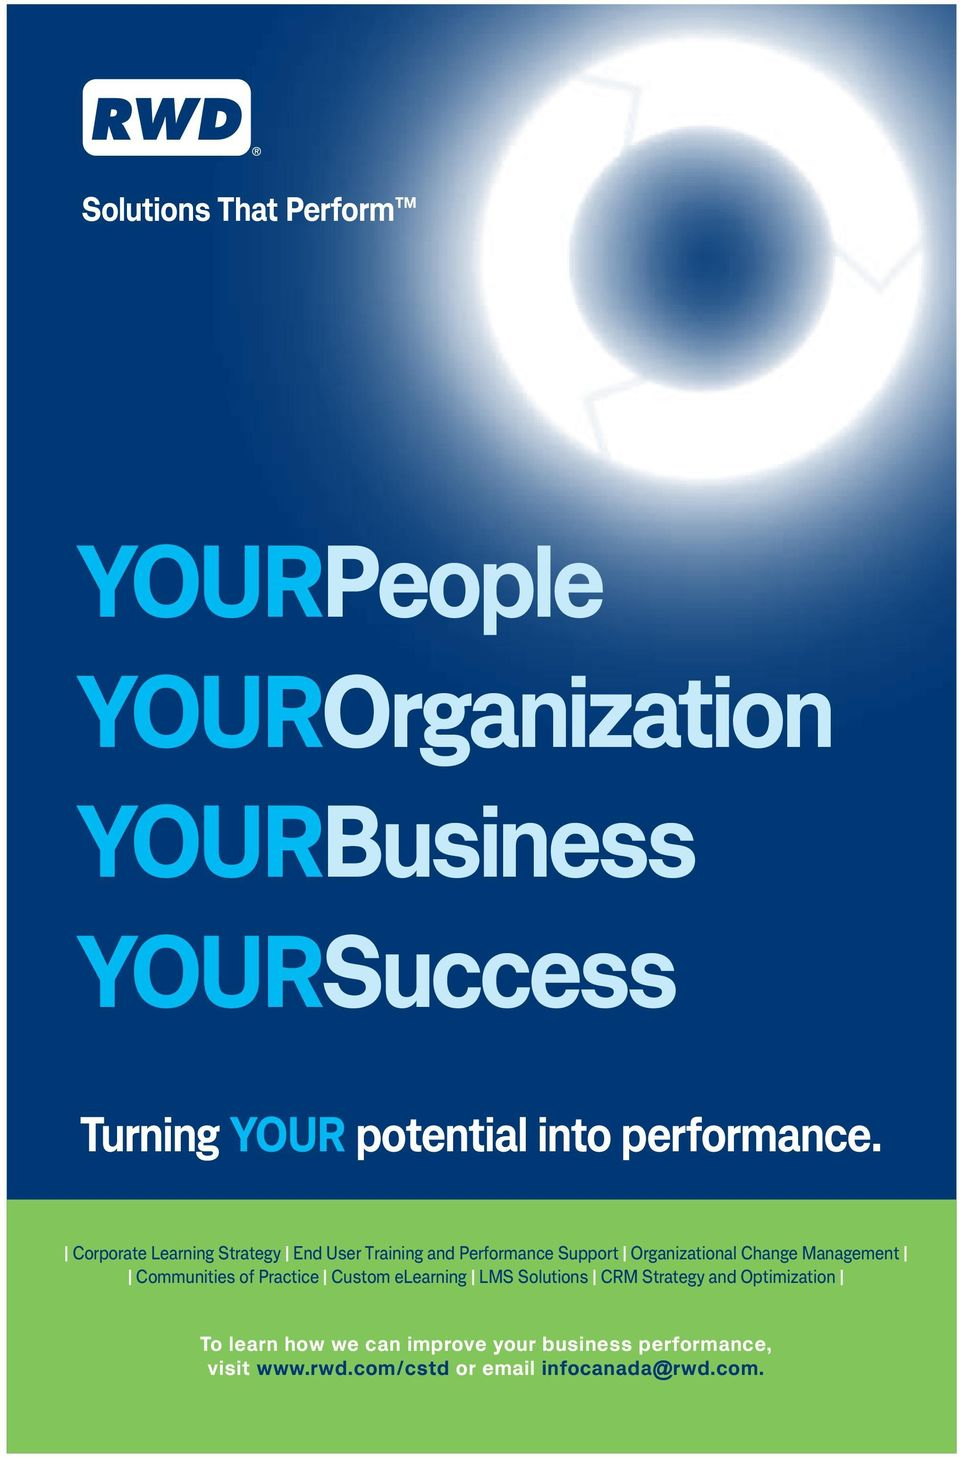 Corporate Learning Strategy End User Training and Performance Support Organizational Change Management